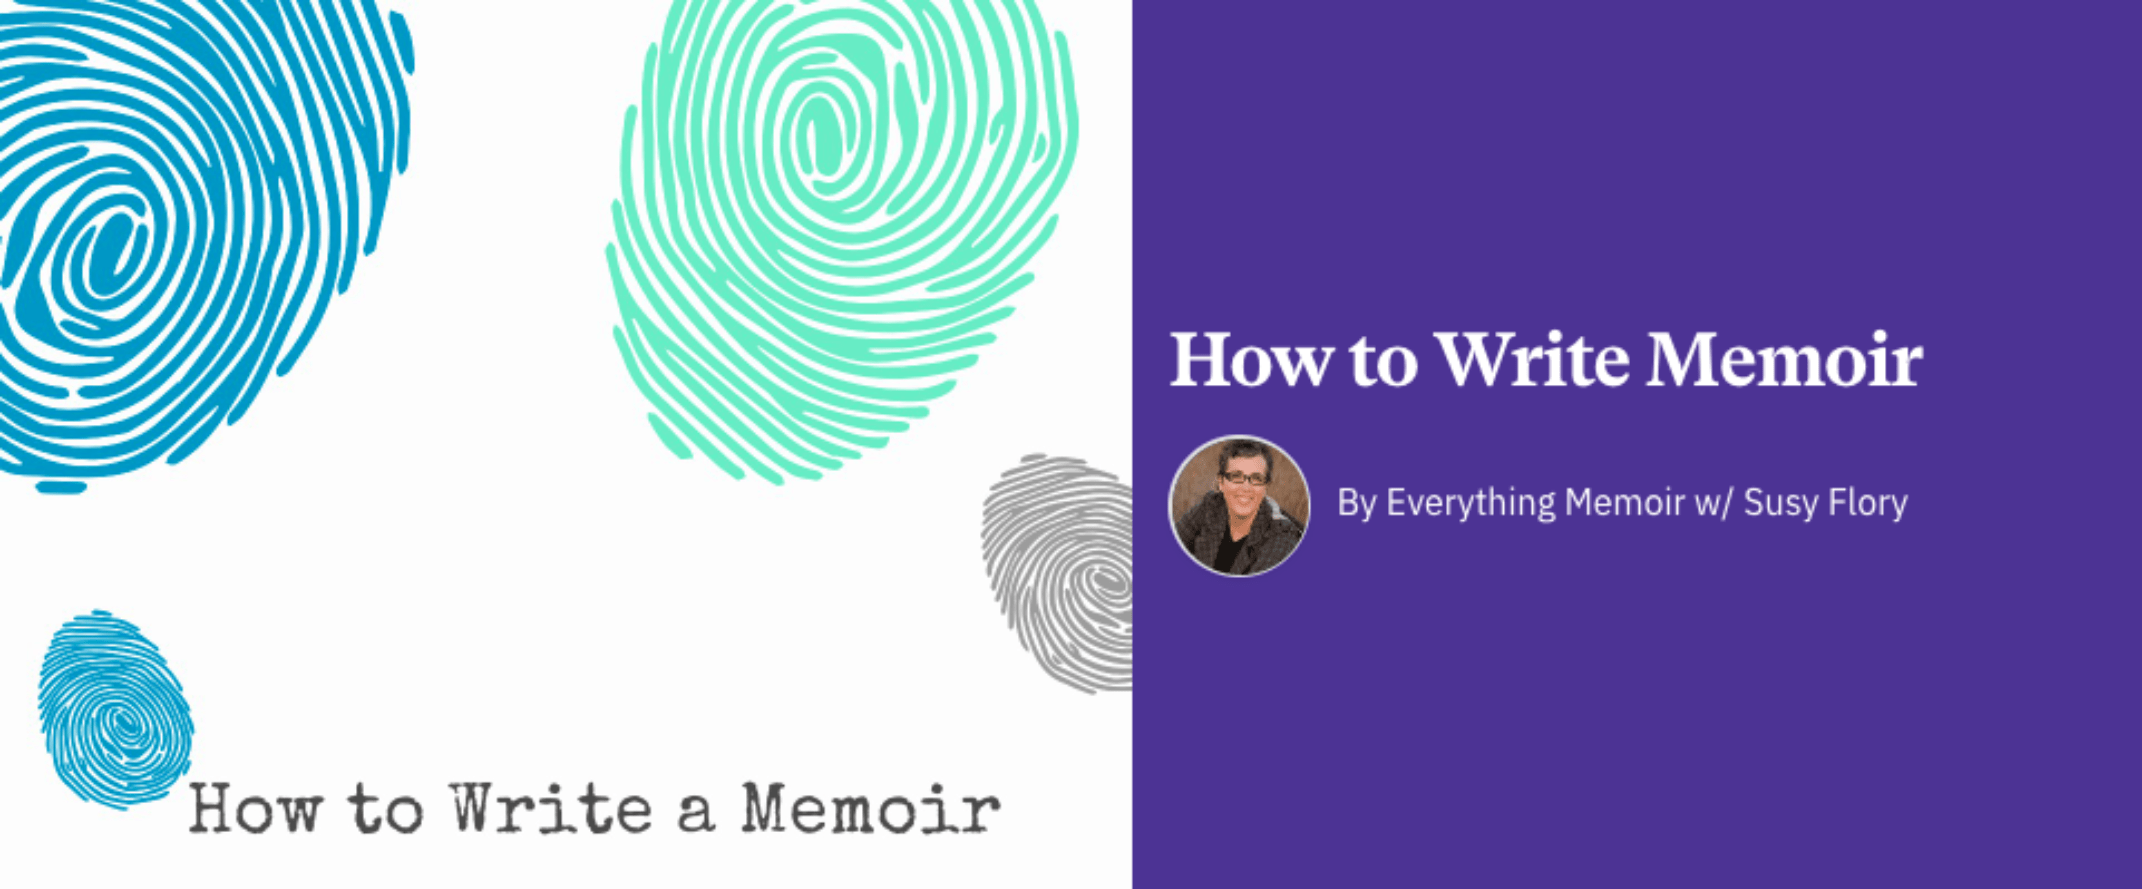 How To Write A Memoir Bookshop Category